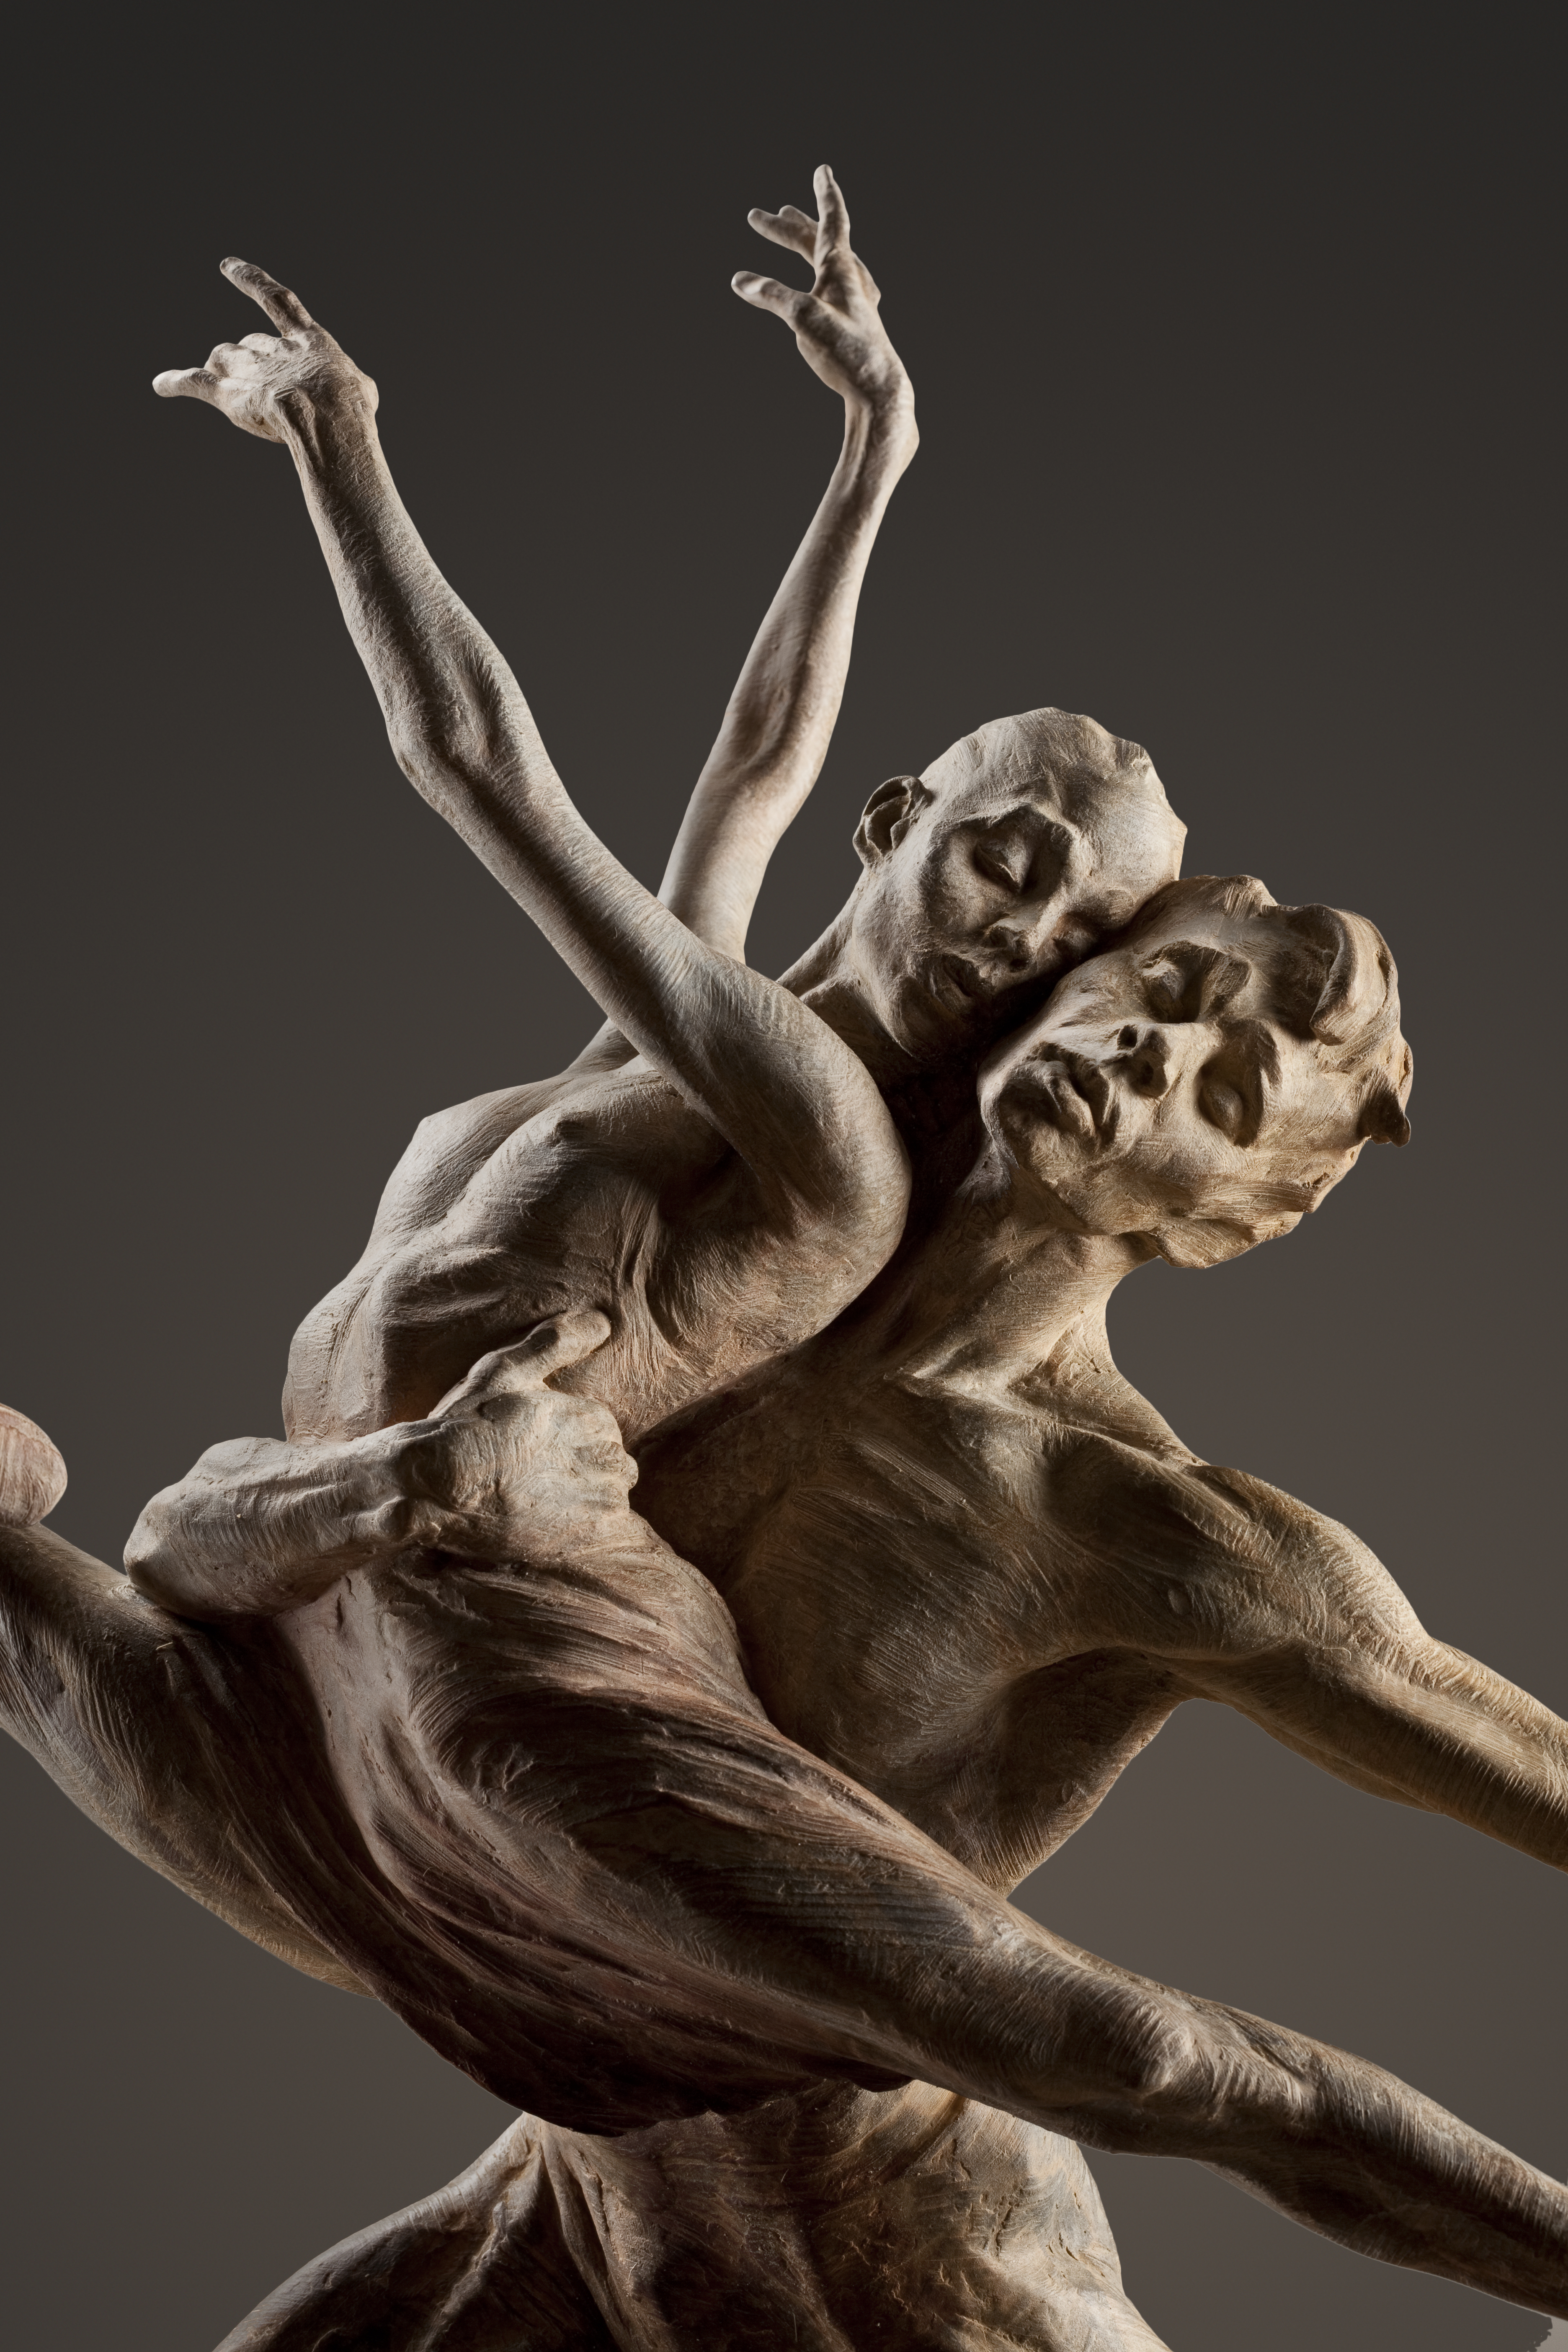 Richard MacDonald Thiago and Marianella in Rehearsal - Off The Wall Gallery Houston